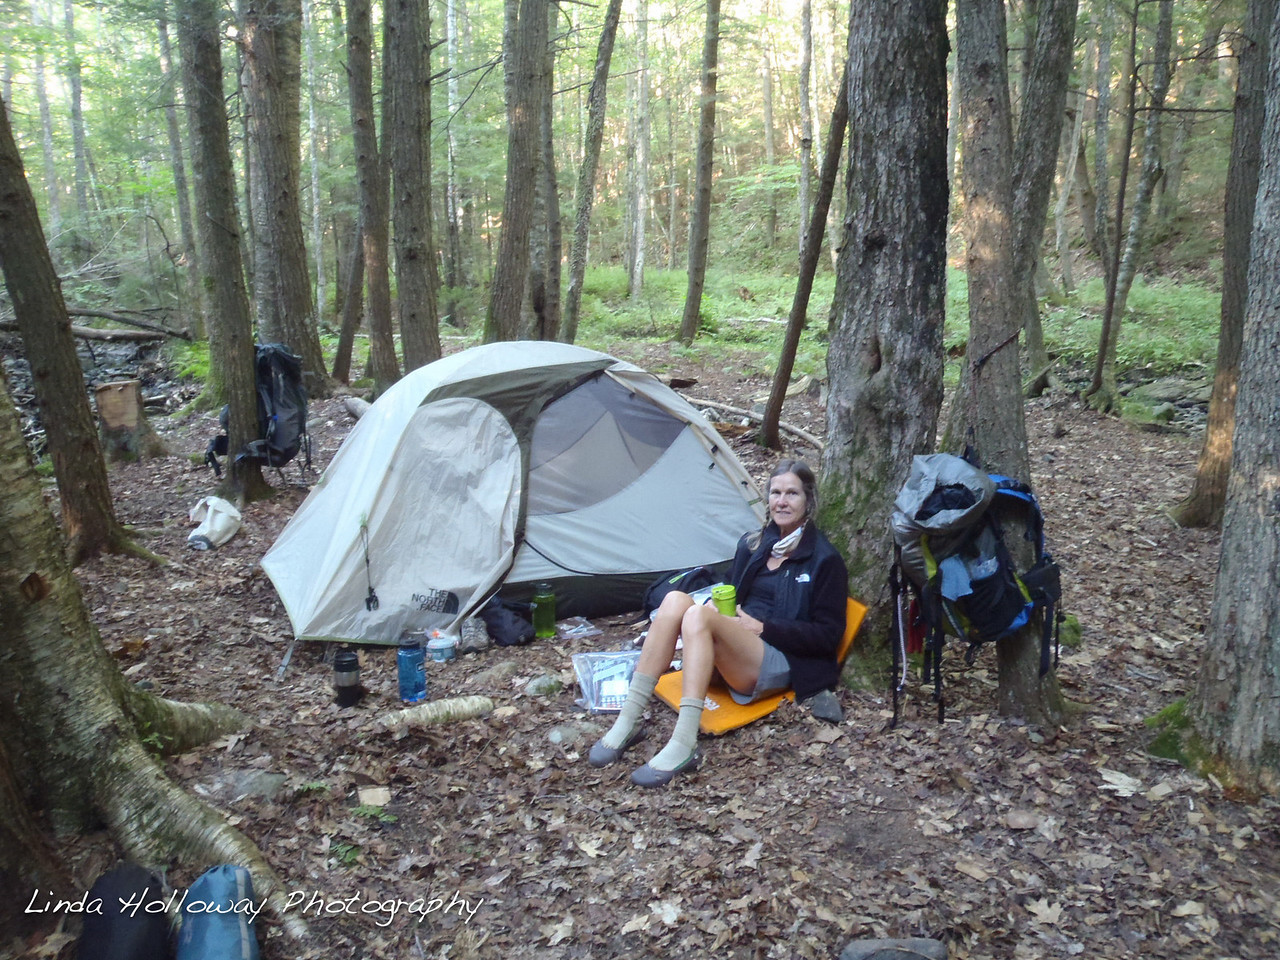 We are camping by a babbling brook tonight (Mink Creek).  We crossed the brook and camped on the island with the brook surrounding us.  Plenty of Water.  Love it.